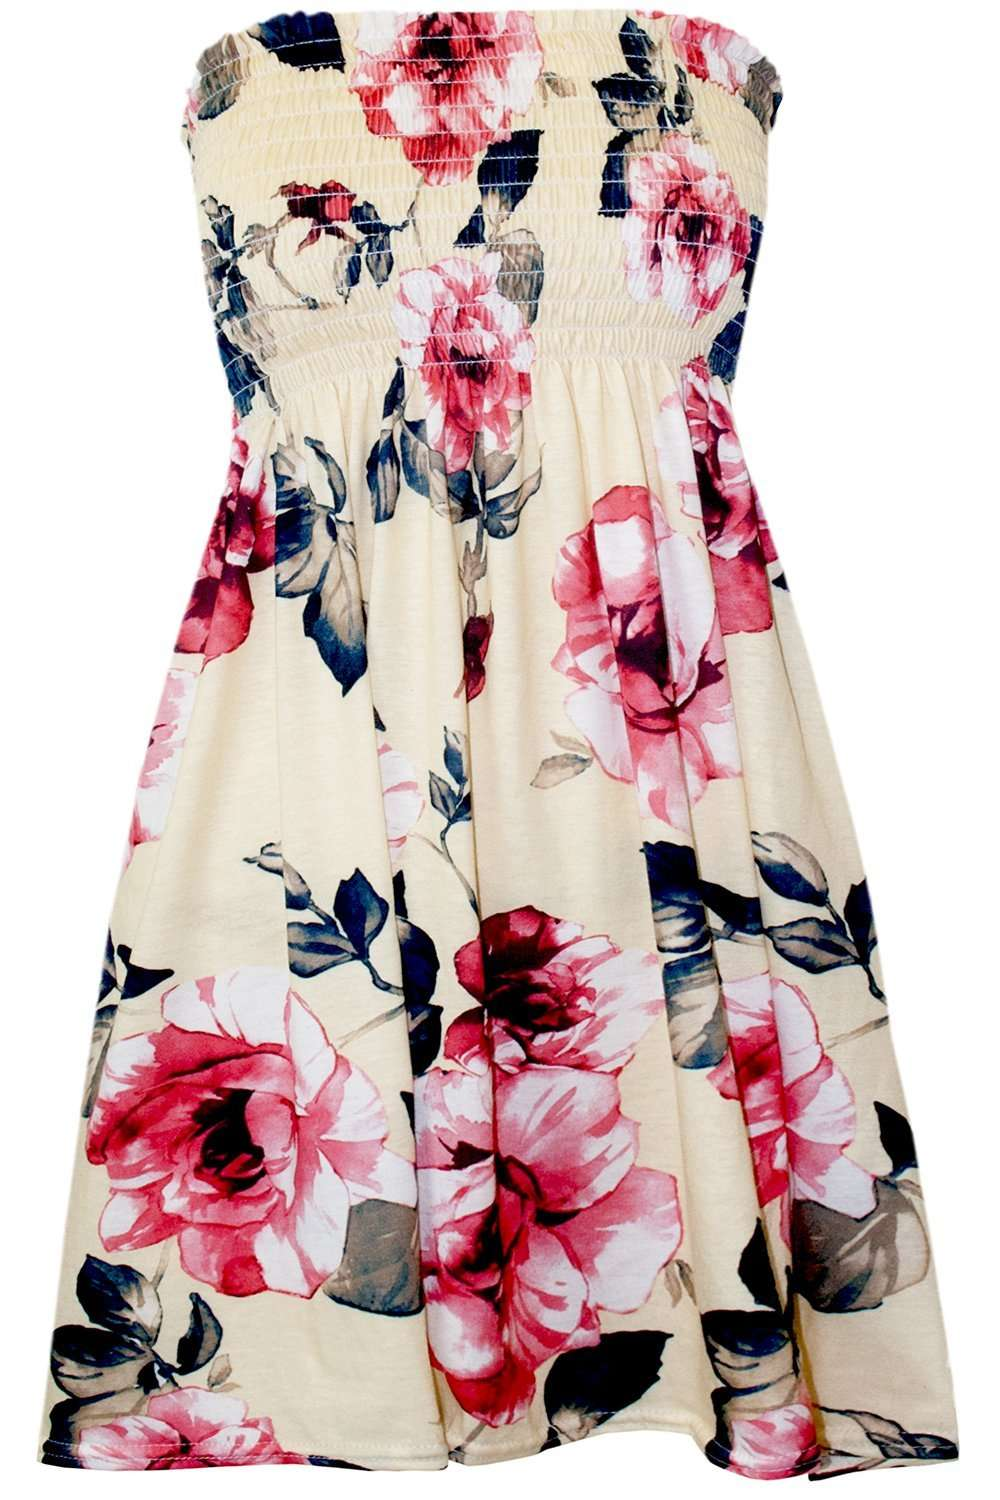 Sammi Sheering Strapless Floral Swing Top - bejealous-com